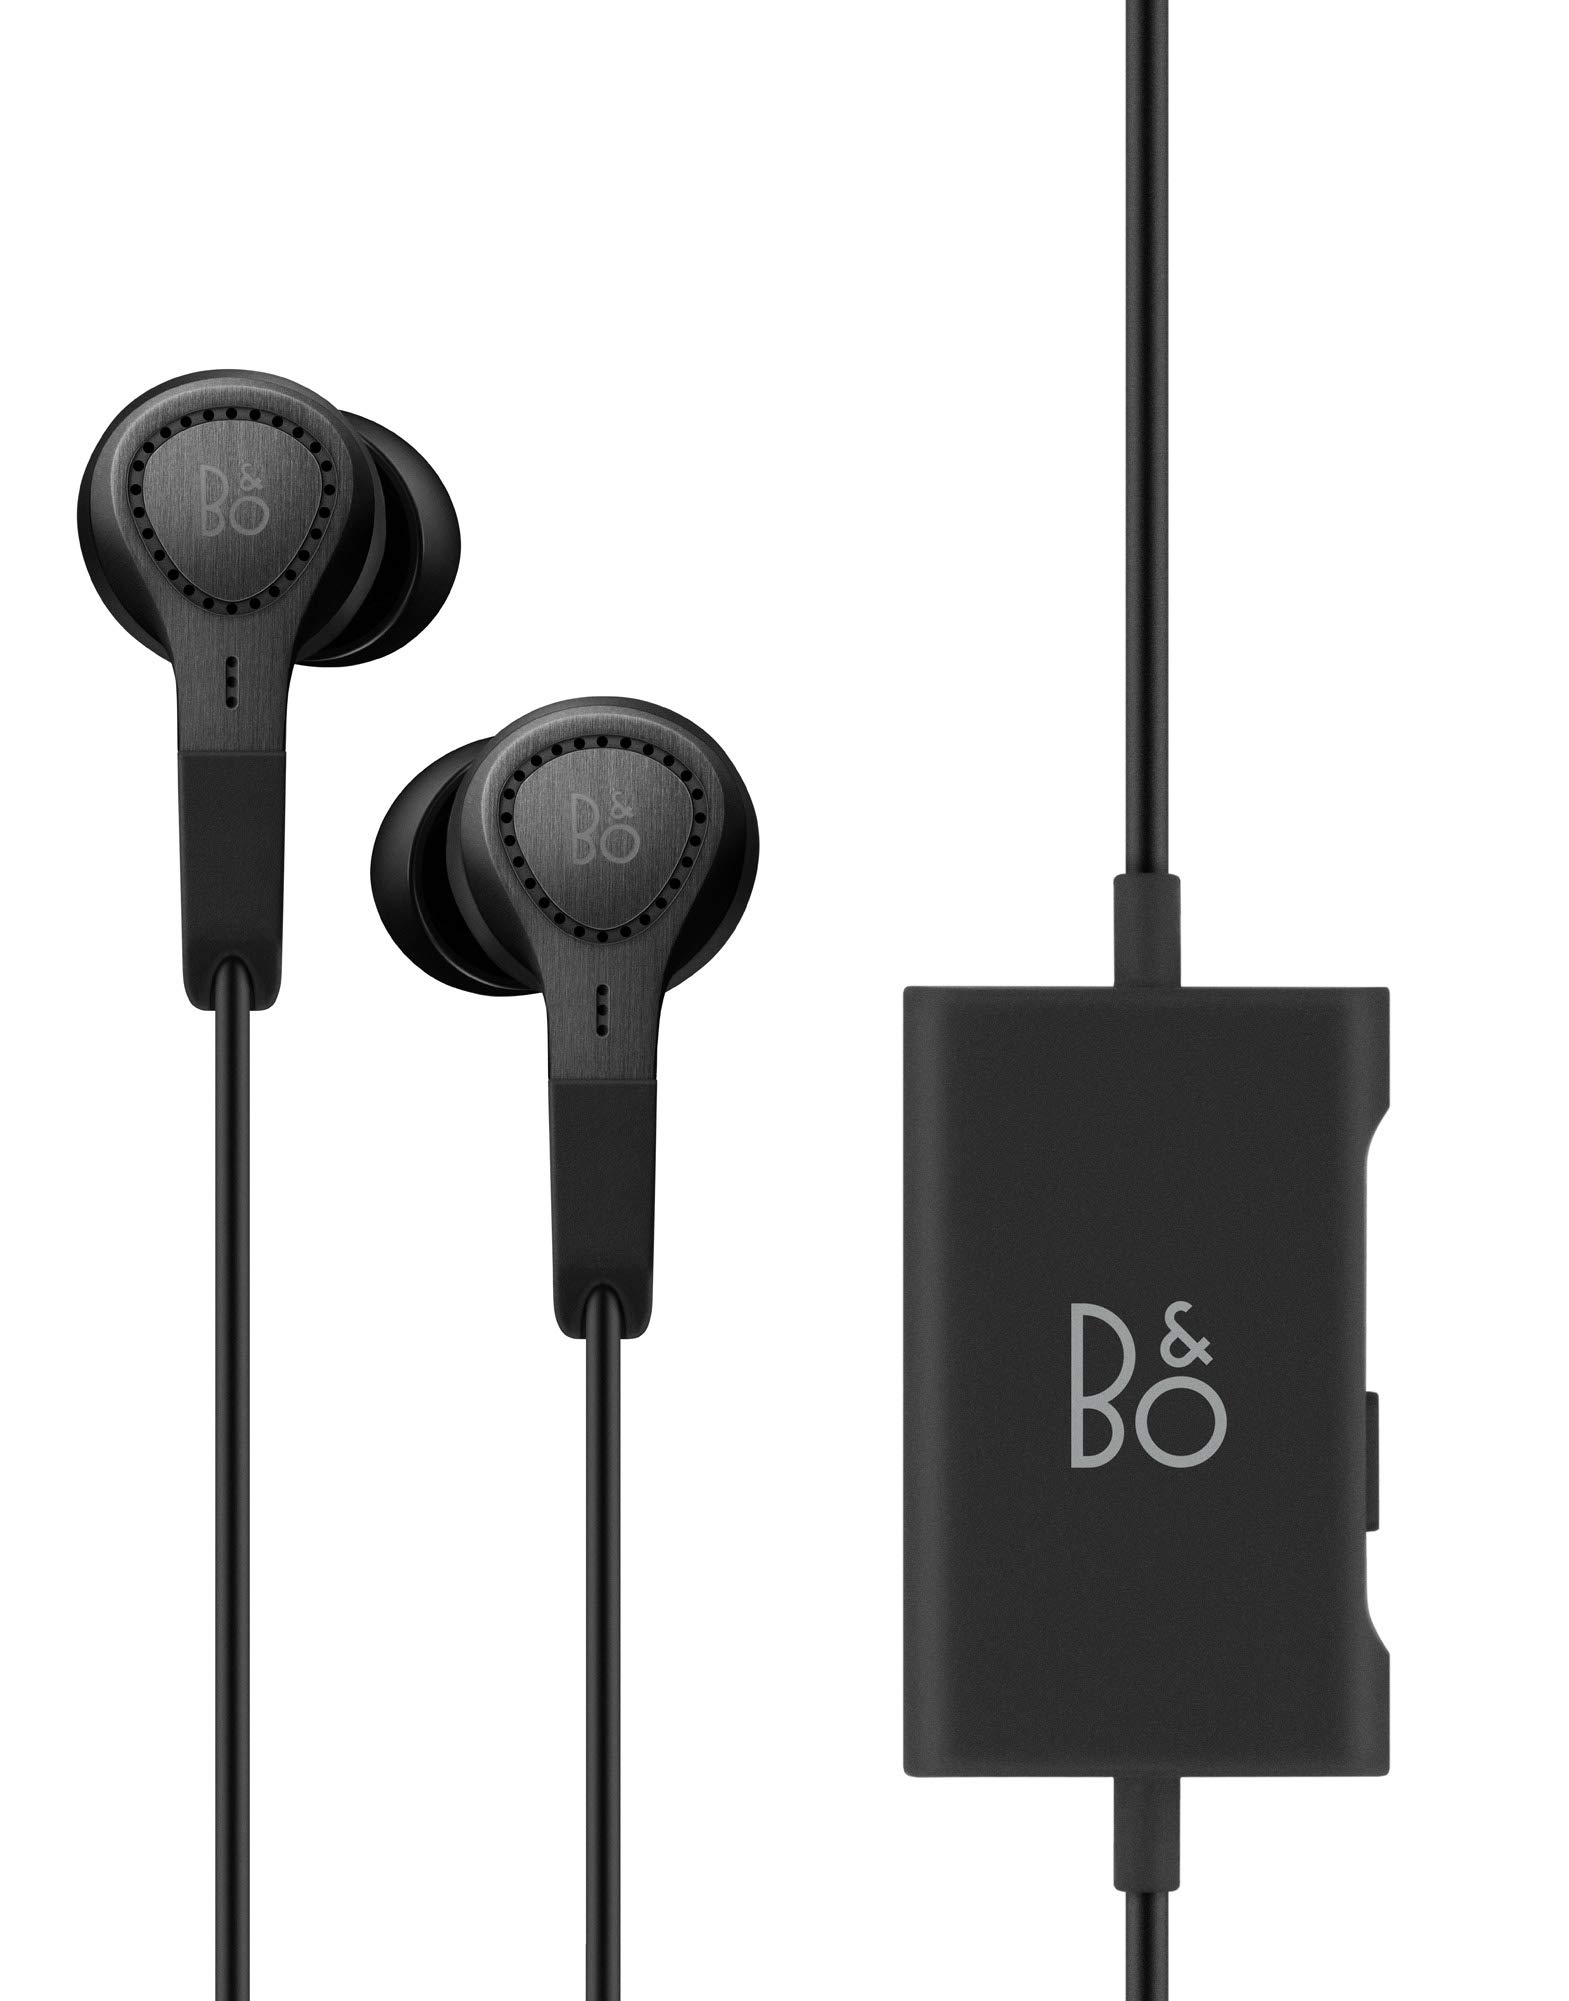 Bang & Olufsen Beoplay E4 Advanced Active Noise Cancelling Earphones – Black - 1644526